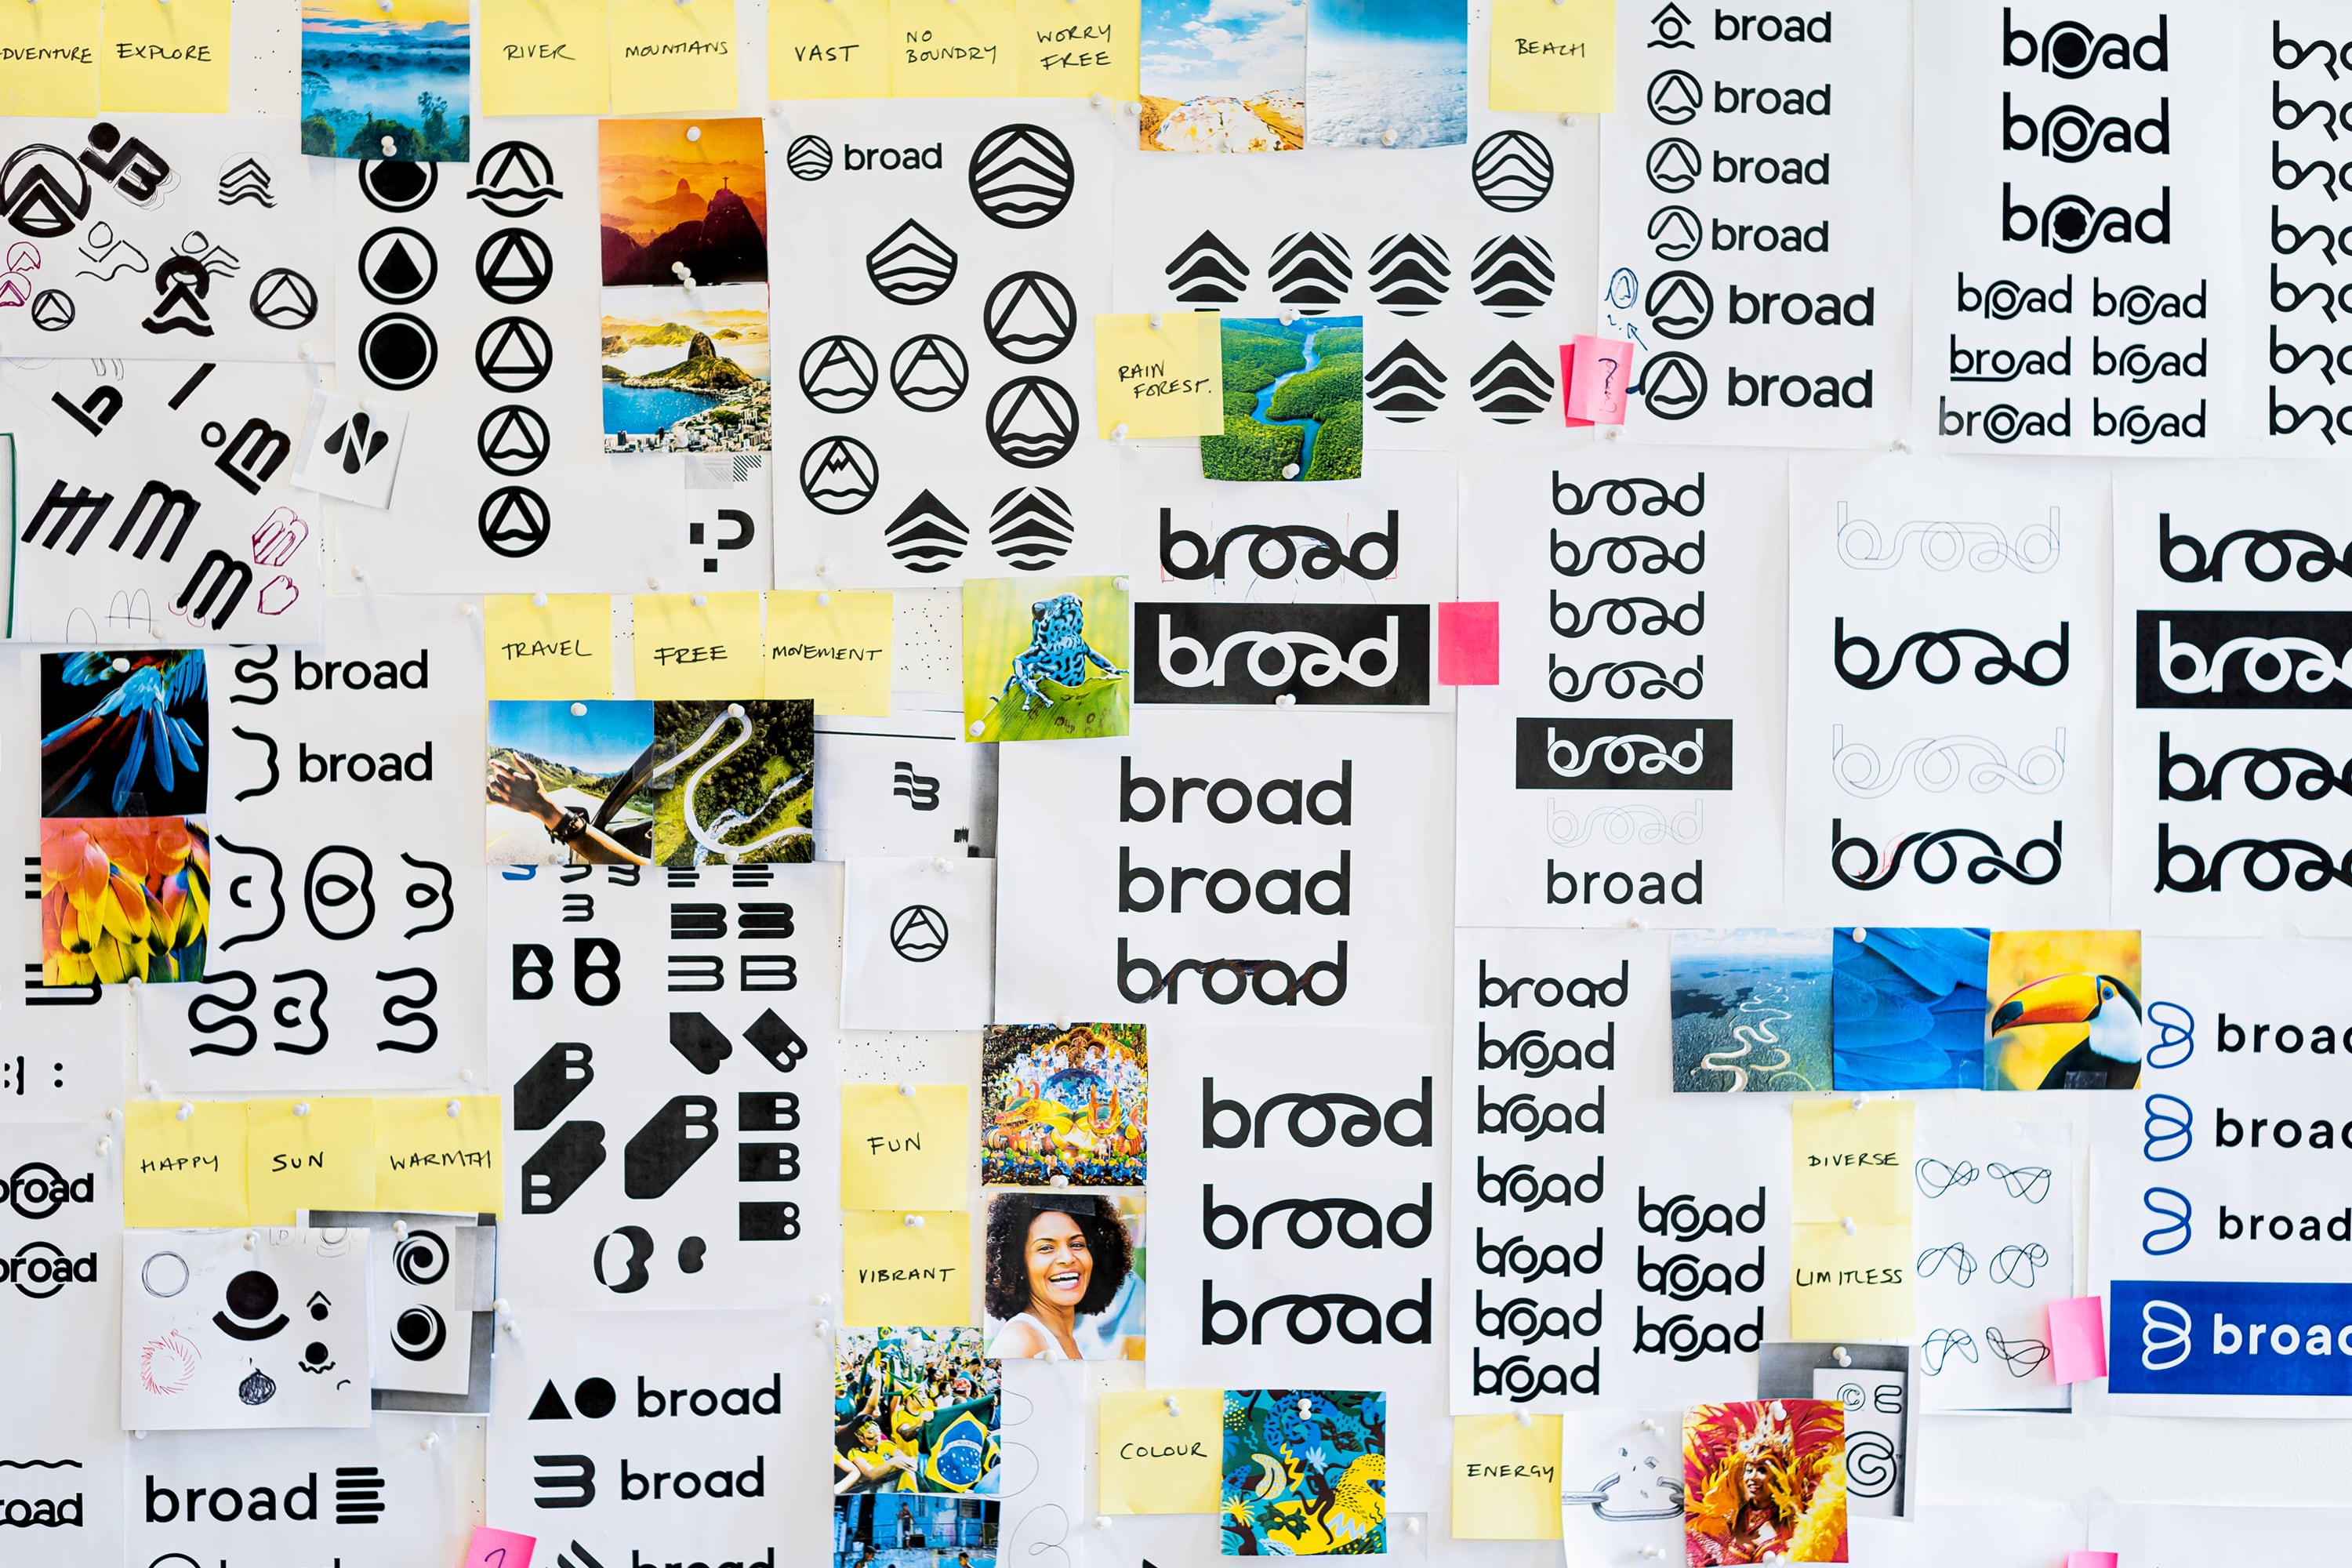 Blond-Industrial-Product-Design-Agency-London-Broad-Branding-Brand-Identity-14a